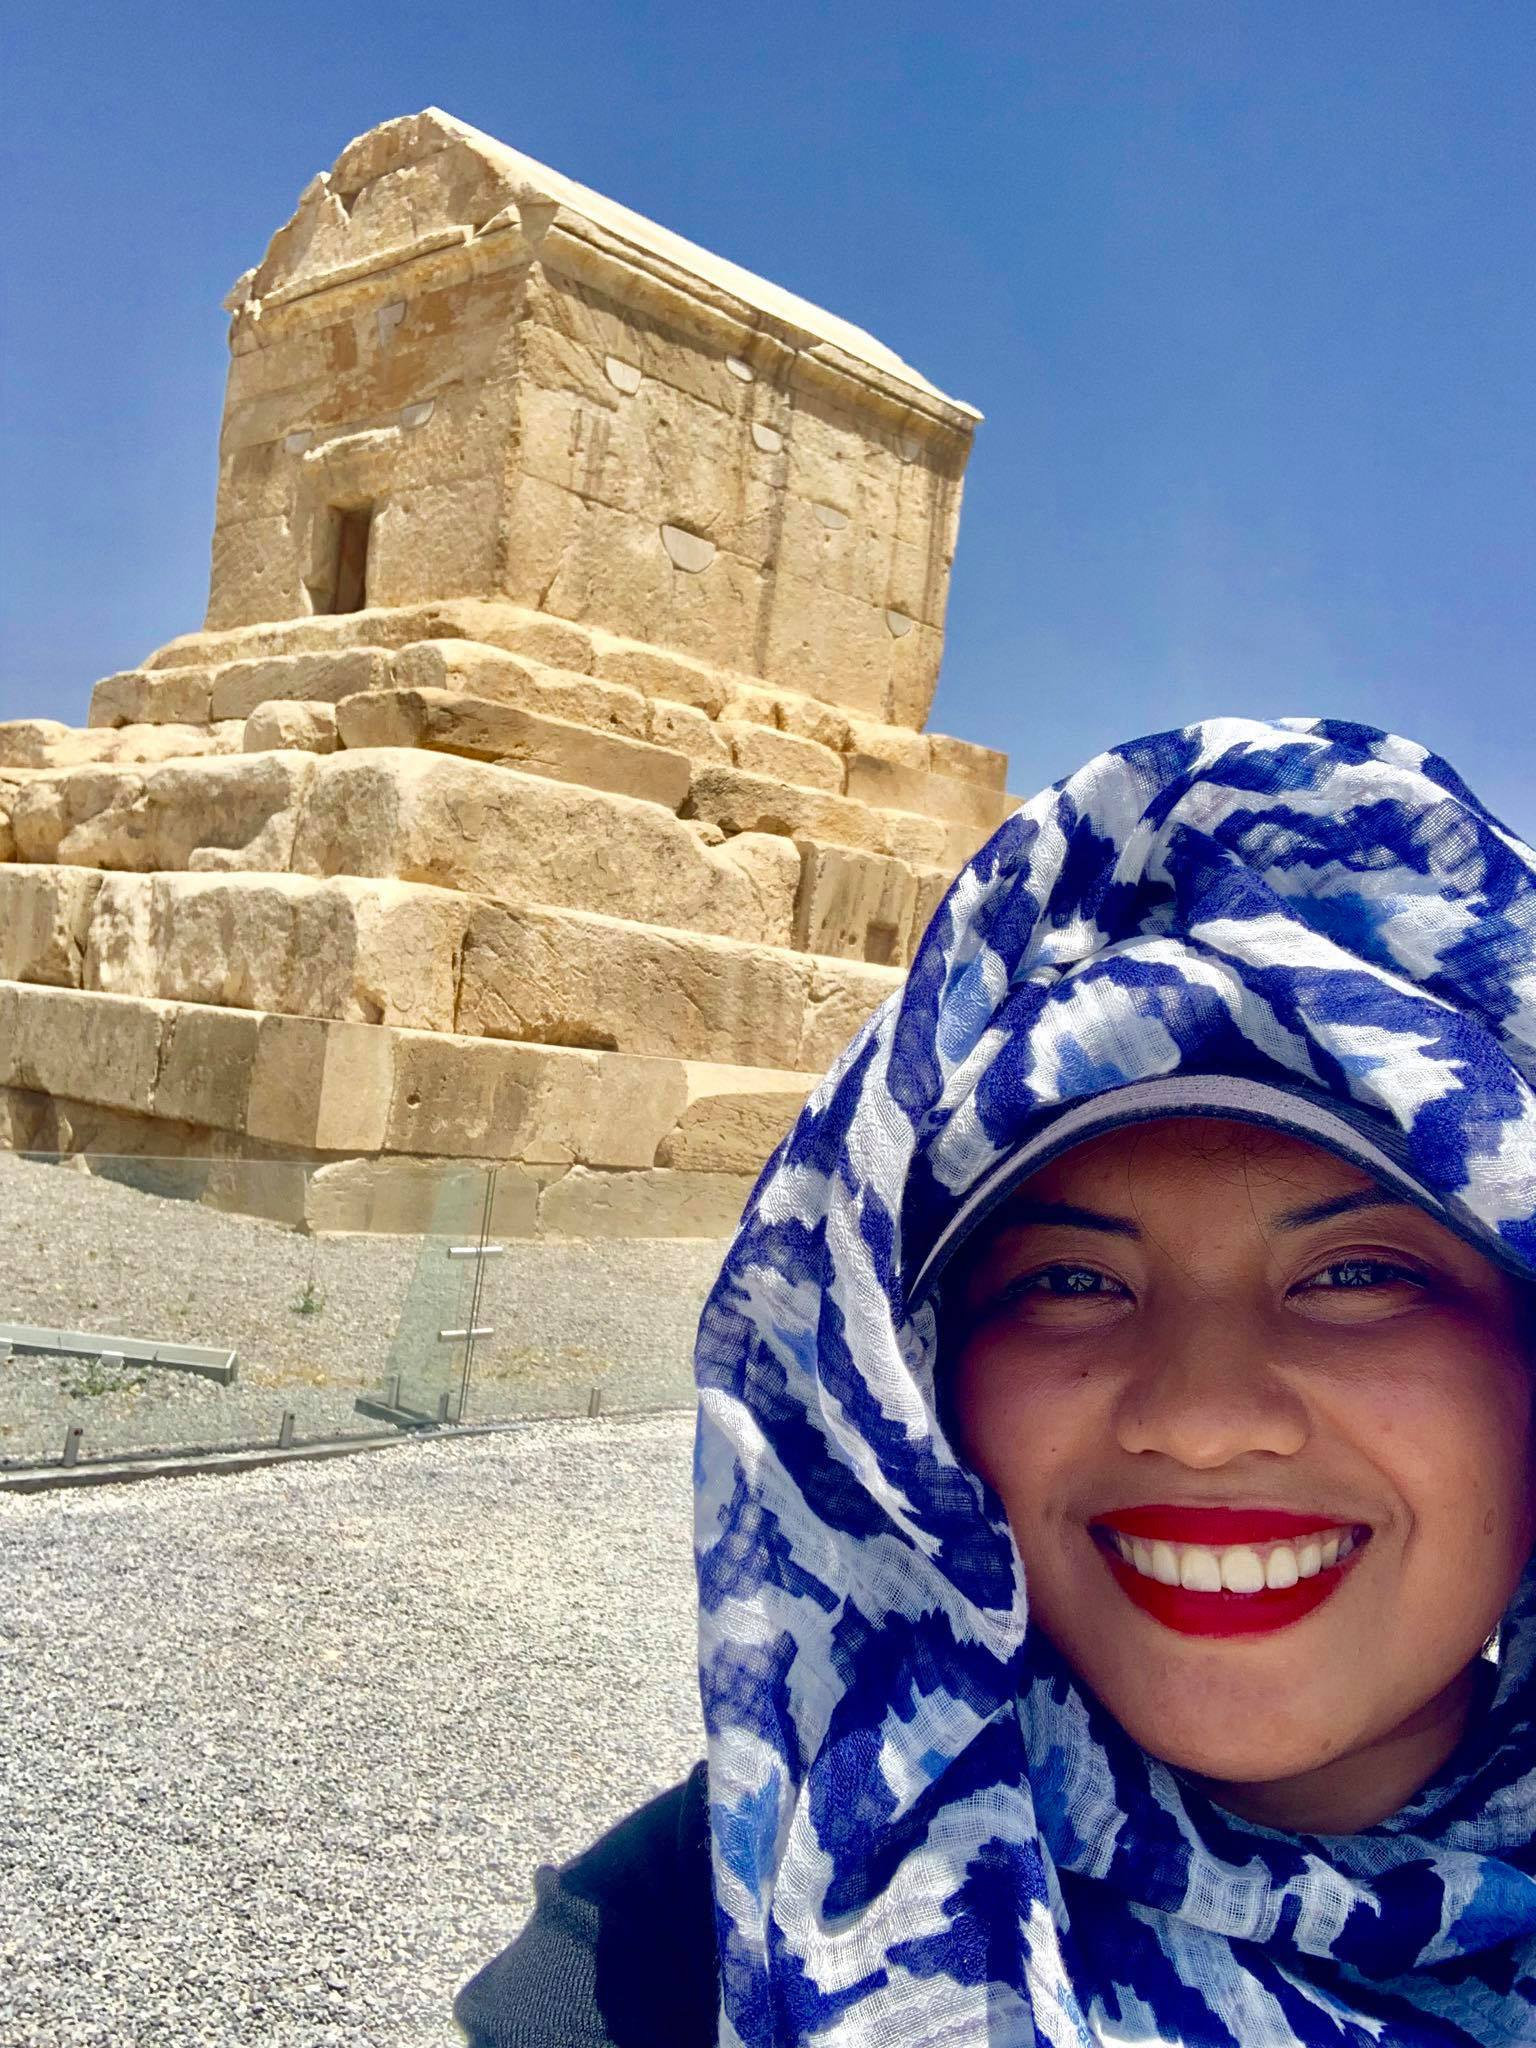 Kach Solo Travels in 2019 UNESCO heritages sites of Persepolis and Pasagardae14.jpg